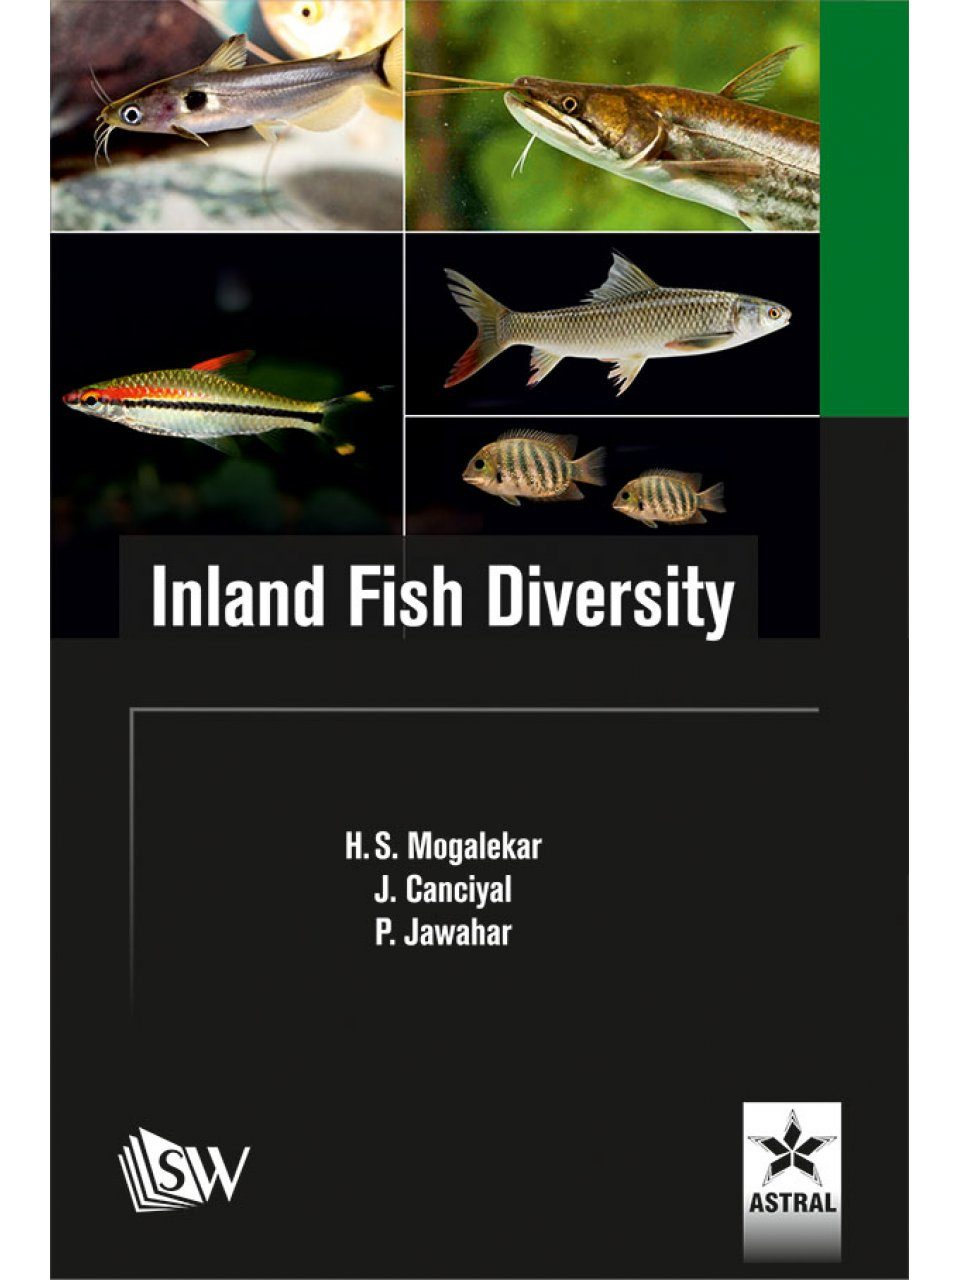 Inland Fish Diversity [of South India]